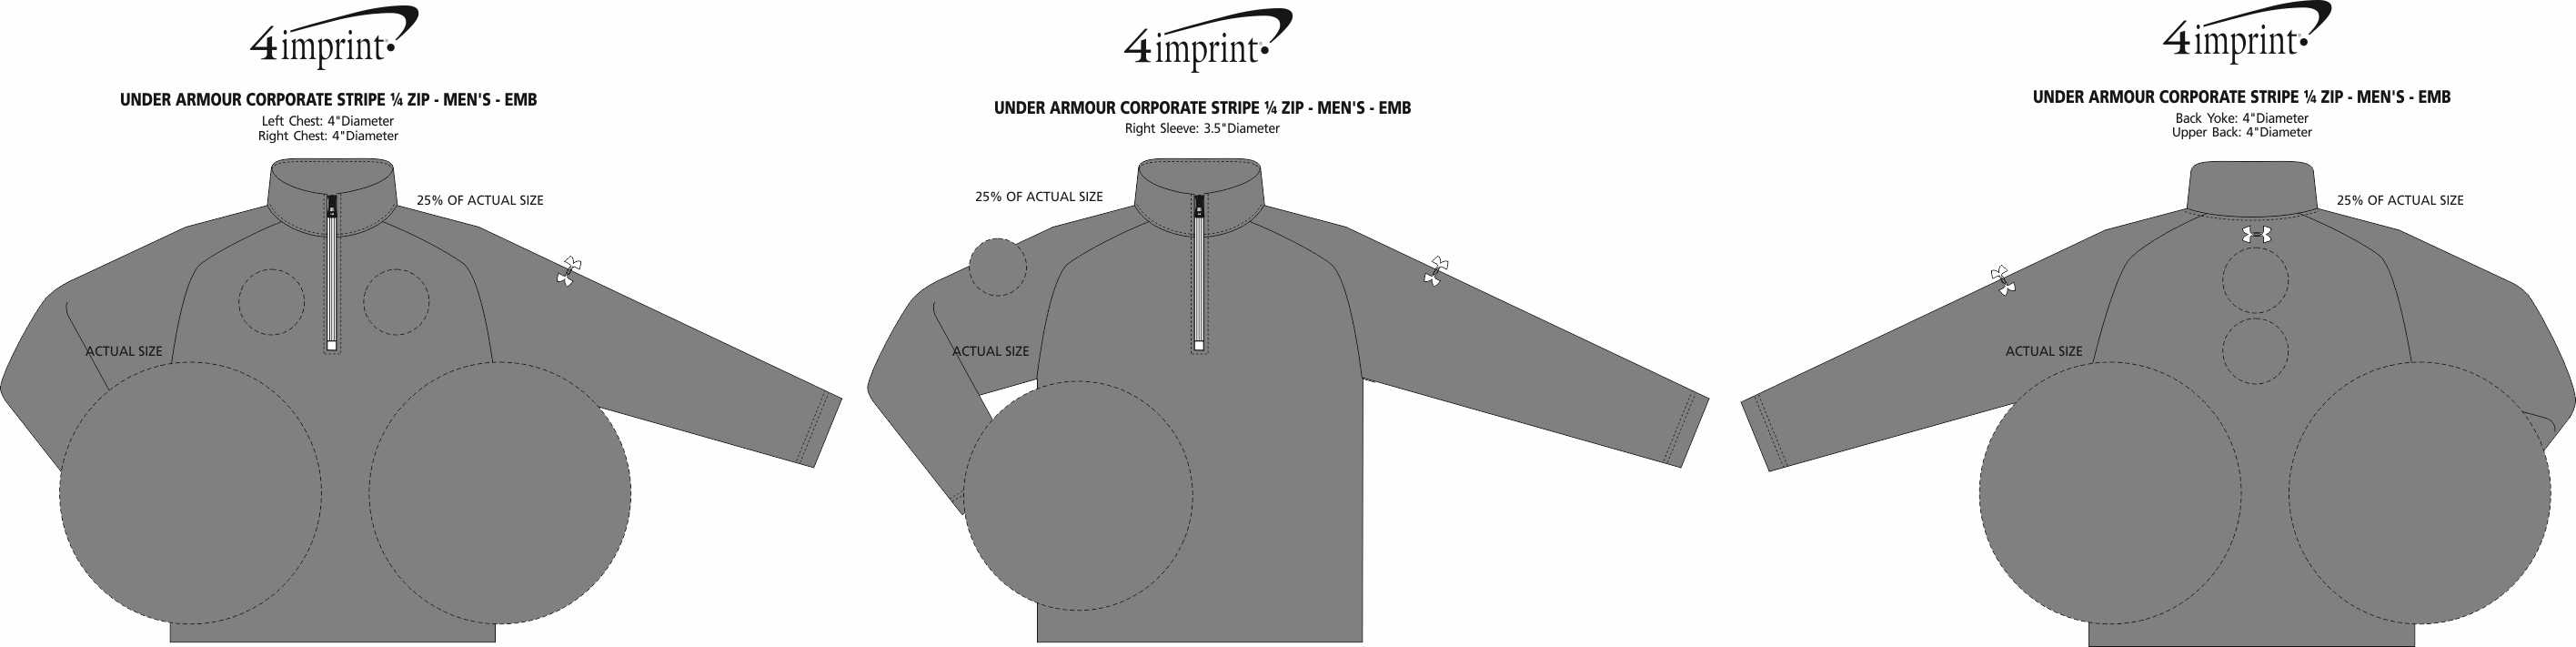 Imprint Area of Under Armour Corporate Stripe 1/4-Zip Pullover - Men's - Embroidered